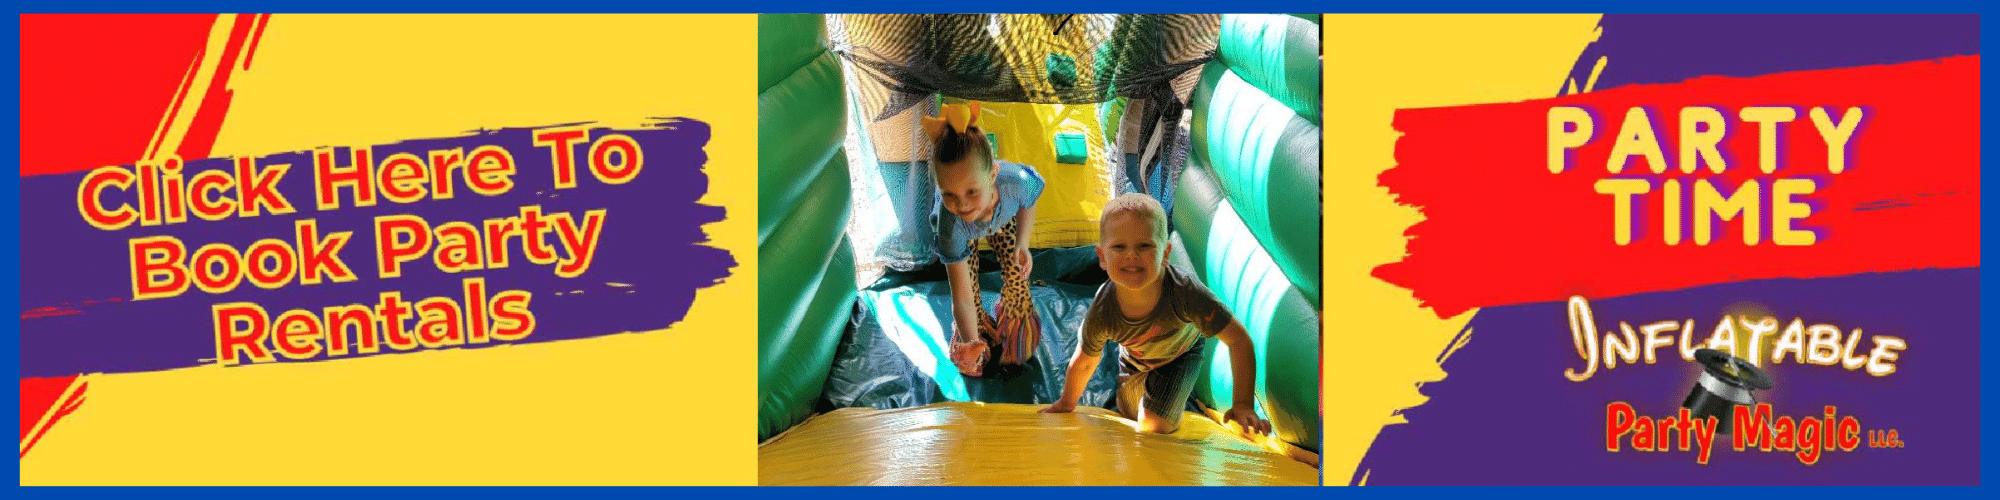 Briar Oaks TX Bounce House Rentals, Water Slide Rentals, and Party Rentals Book Now